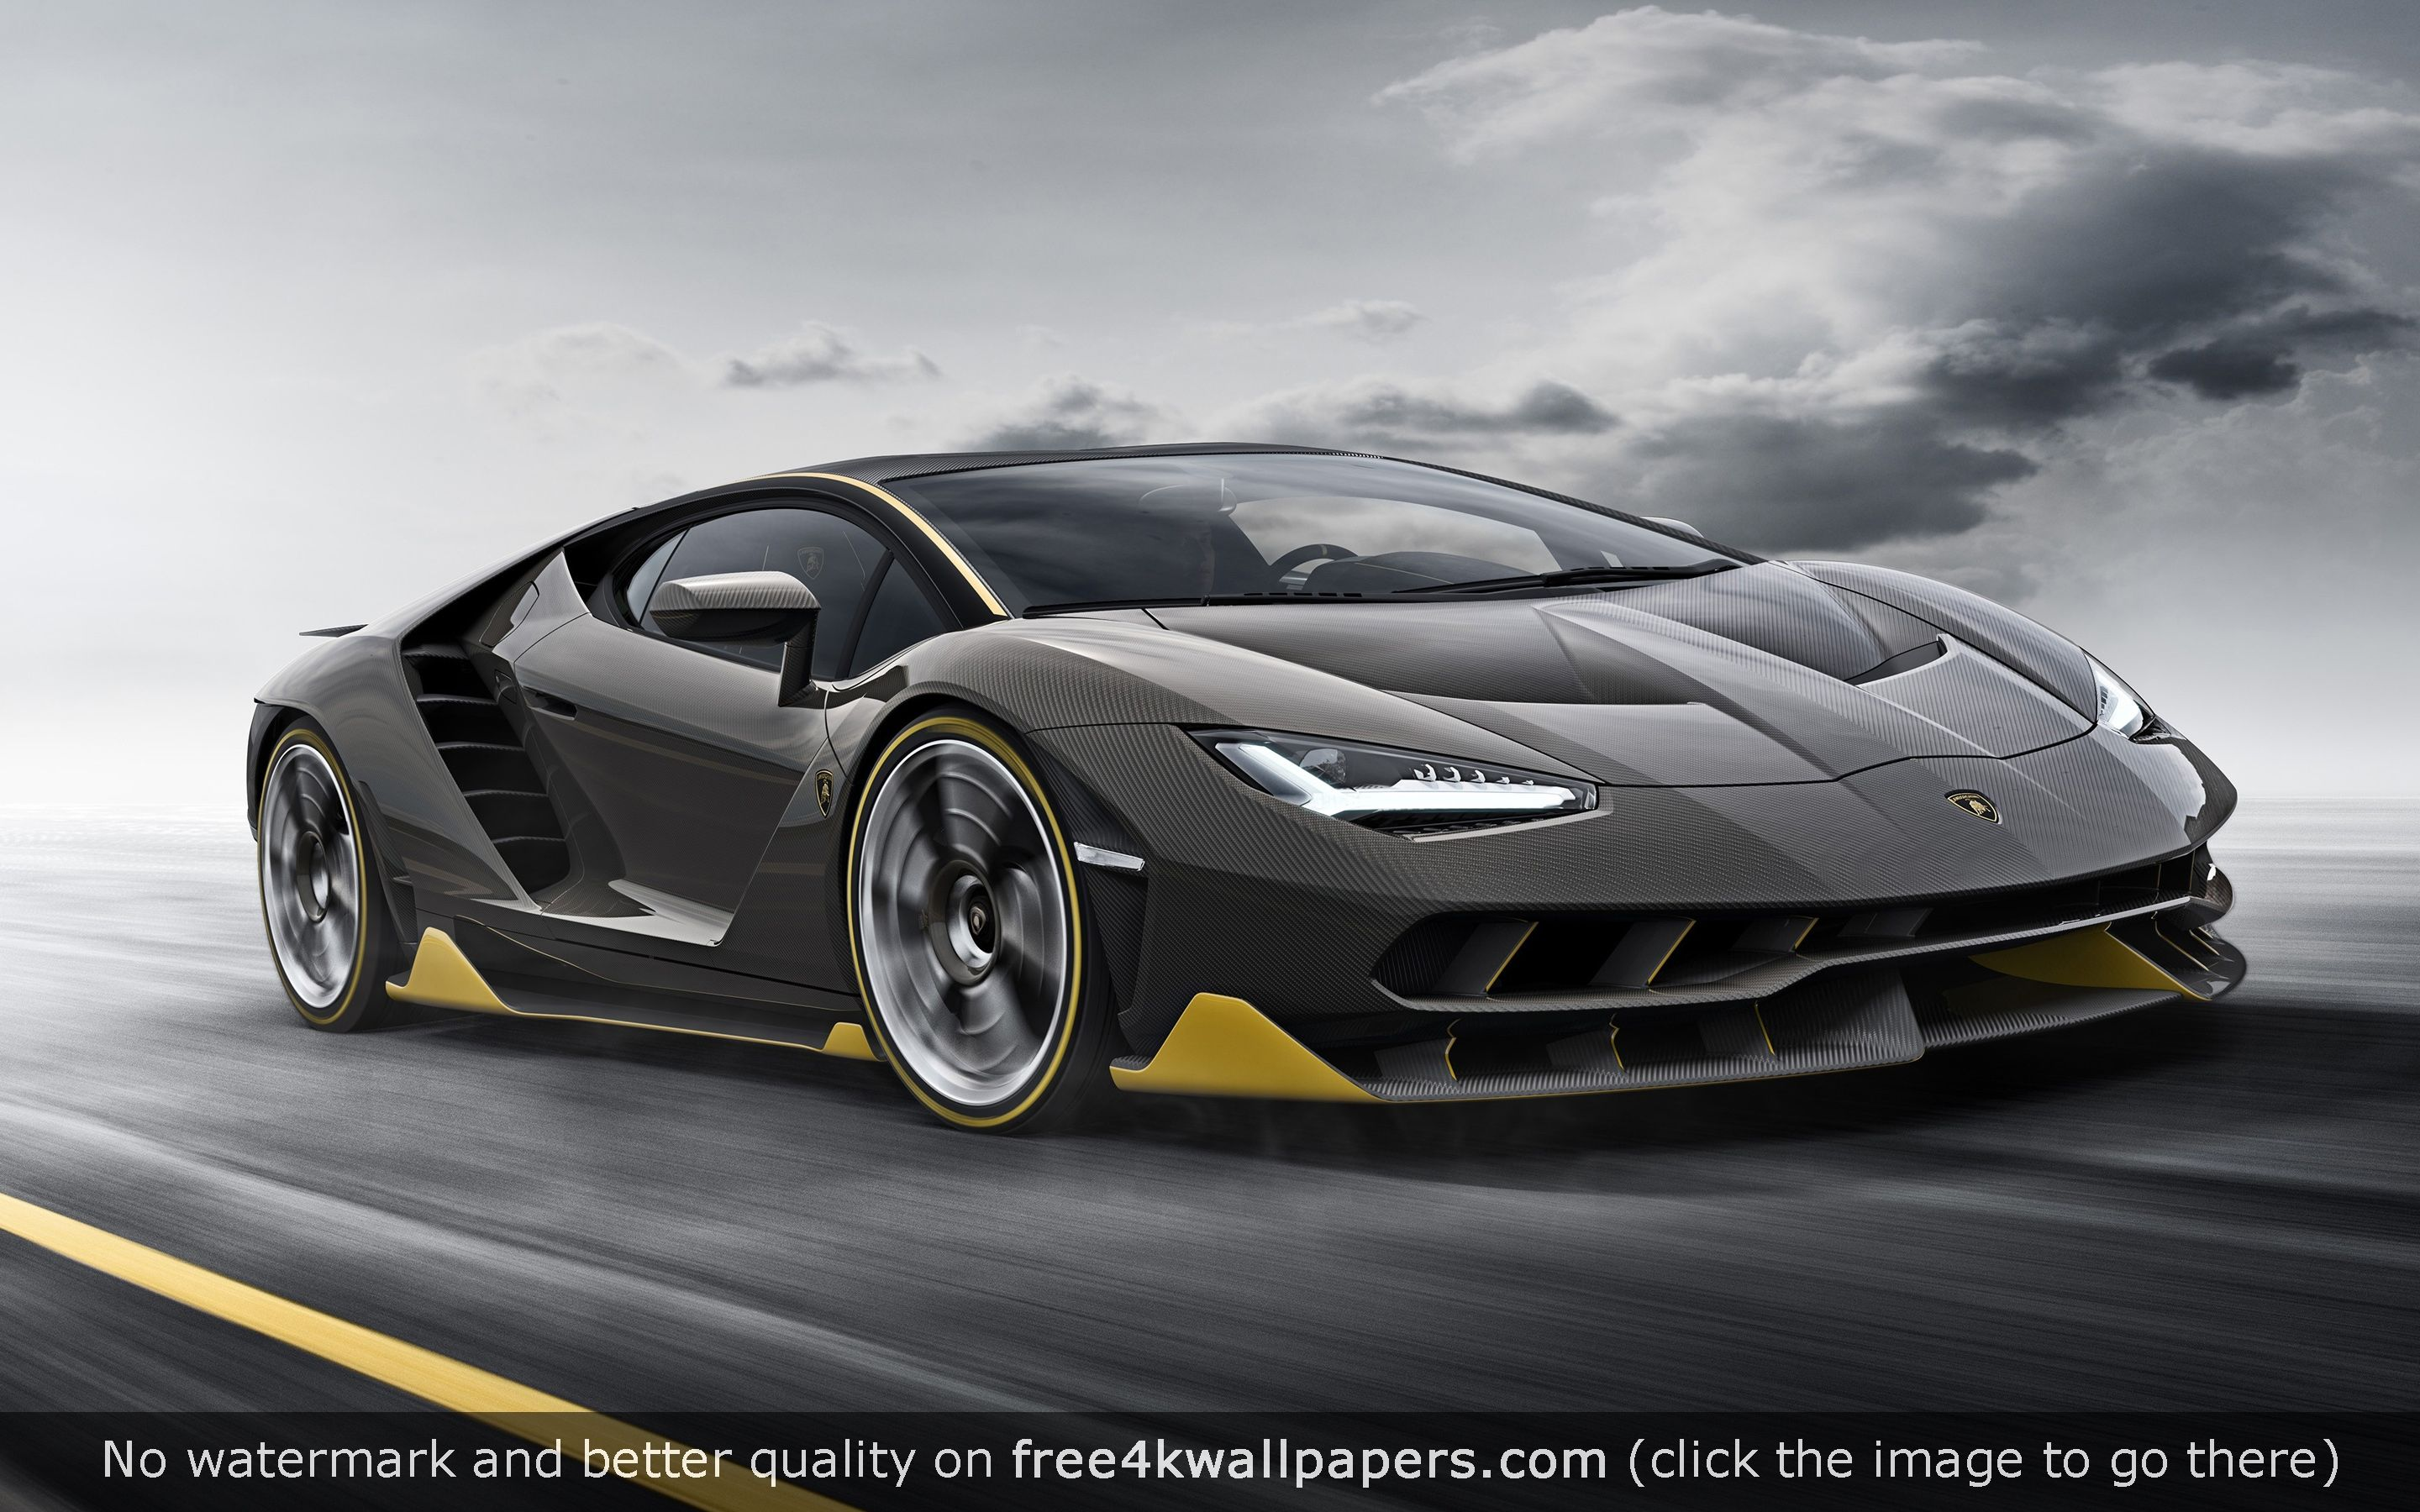 Most Inspiring Wallpaper Mac Lamborghini - 3d490a8e48255cf5039c6798a3832a68  2018_711797.jpg